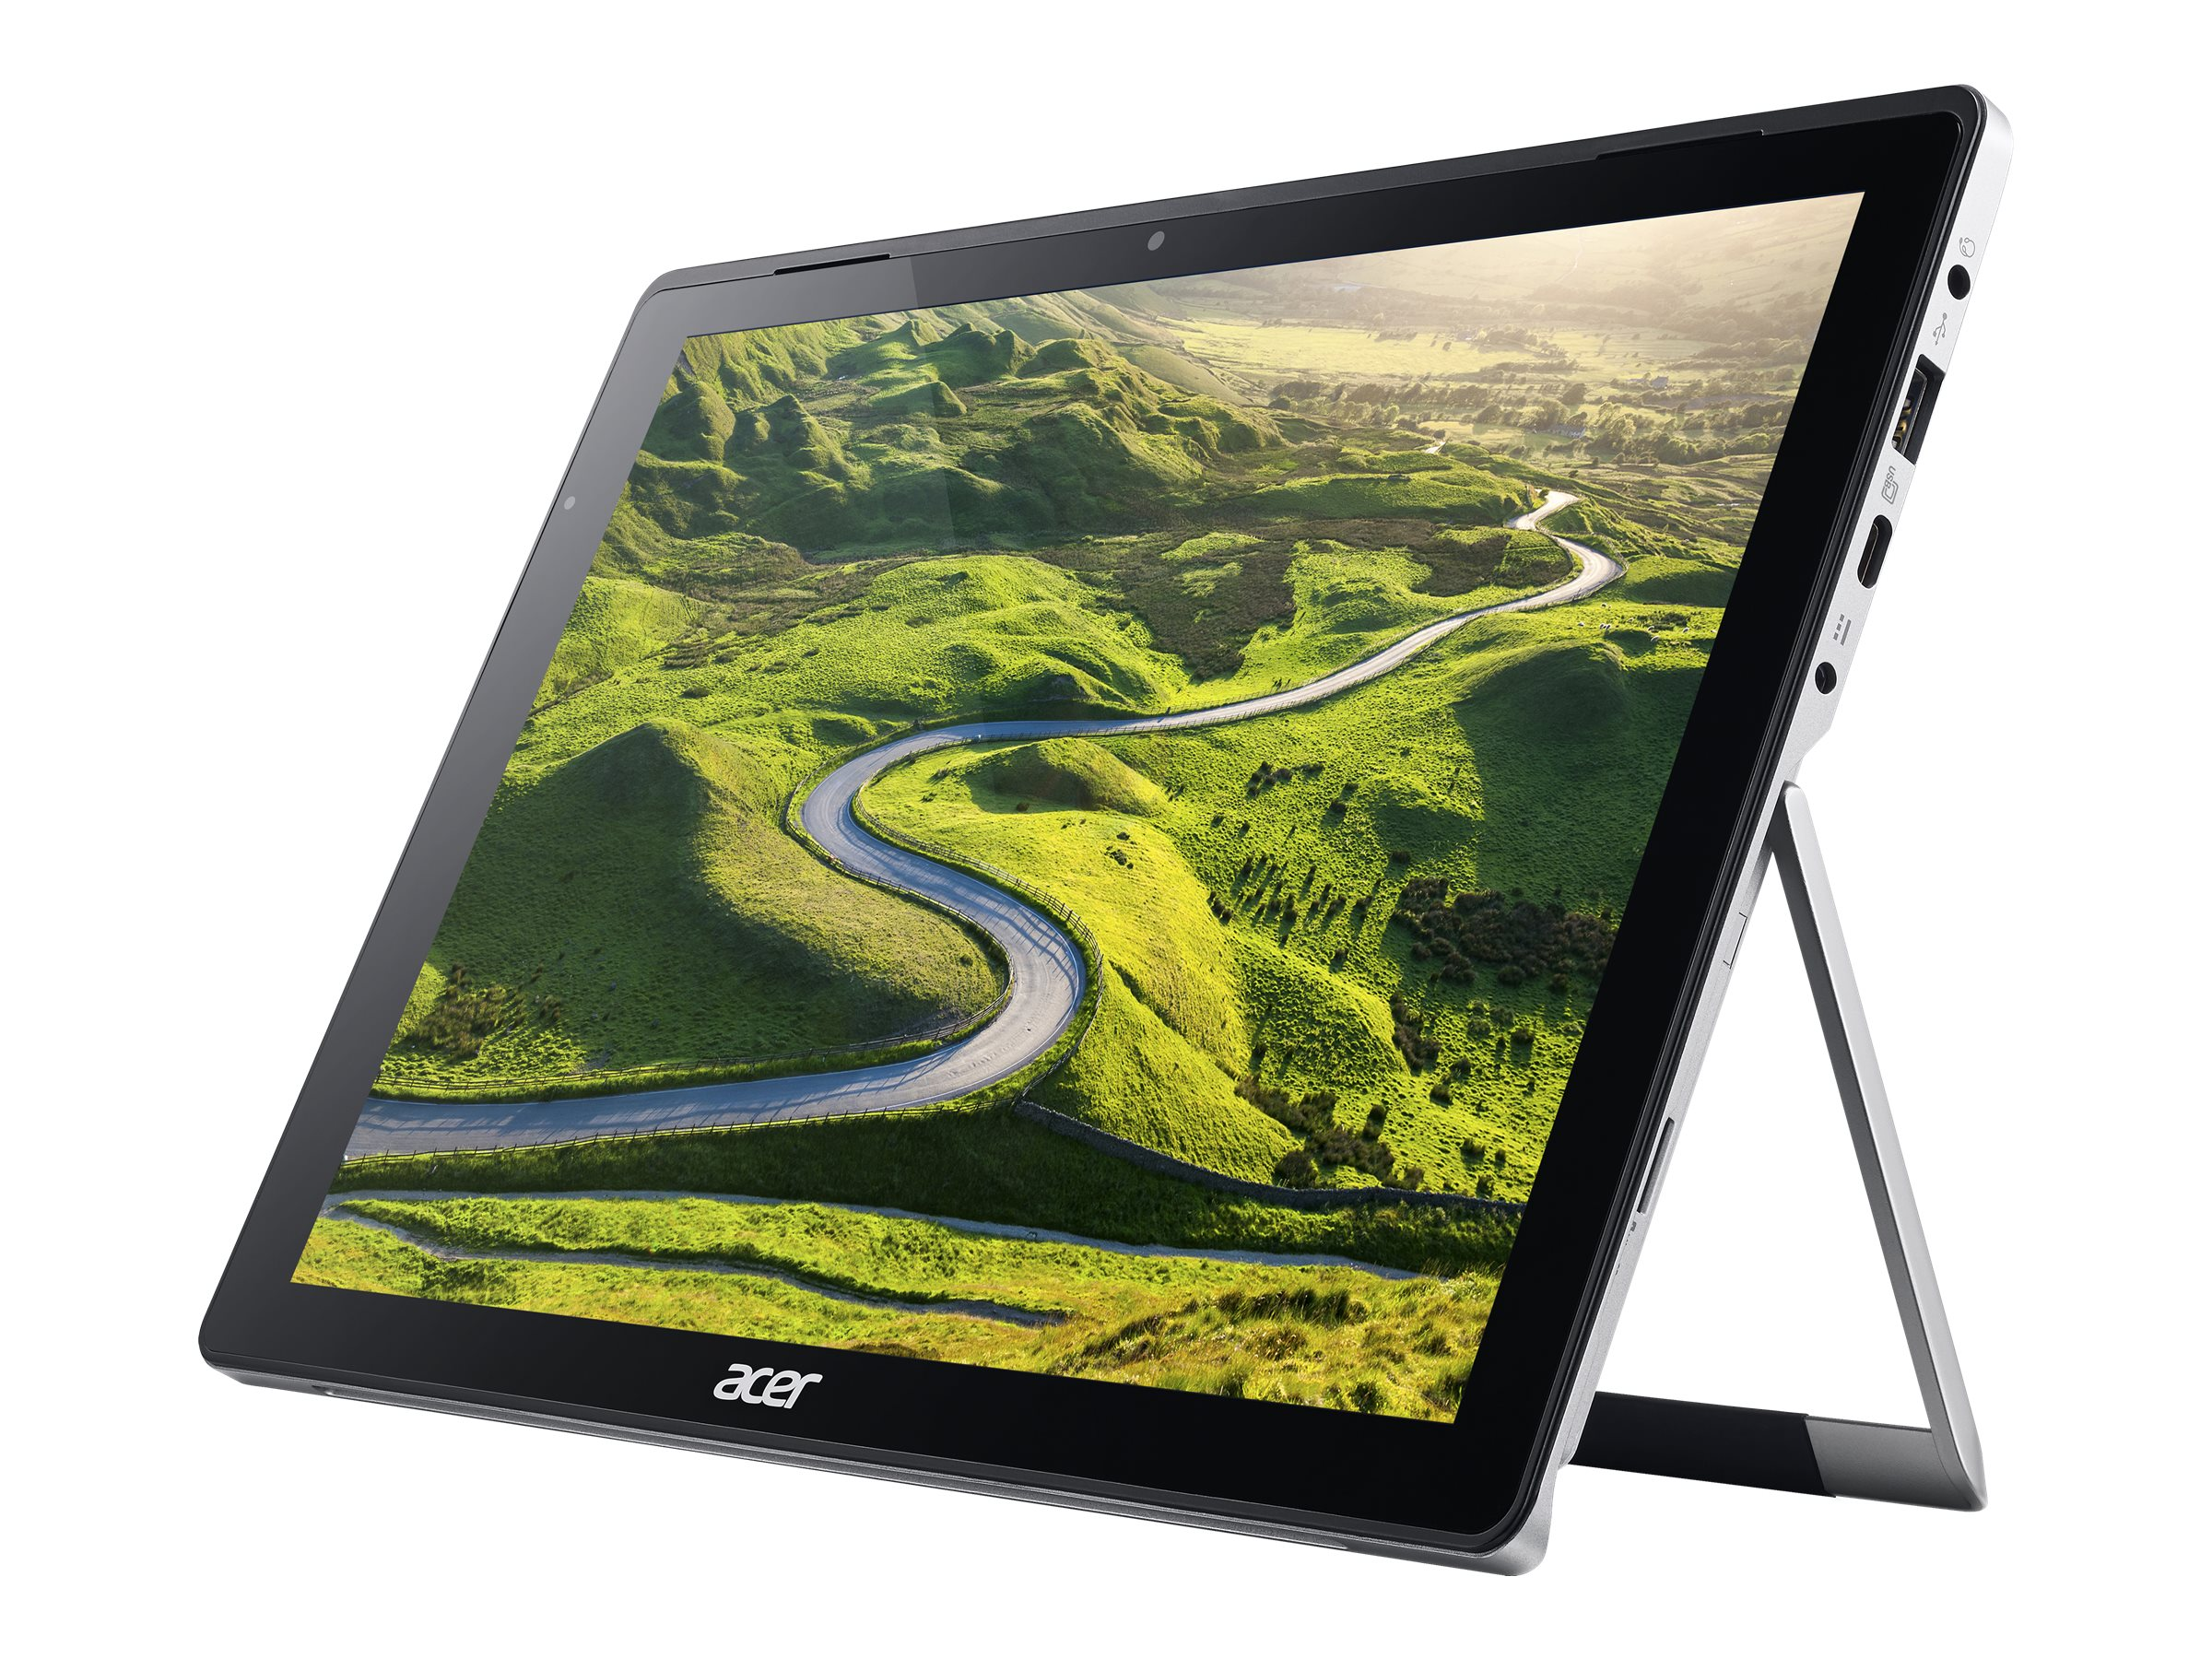 Acer Switch Alpha 12 SA5-271P-77ST - Tablet - mit abnehmbarer Tastatur - Core i7 6500U / 2.5 GHz - Win 10 Pro 64-Bit - 8 GB RAM